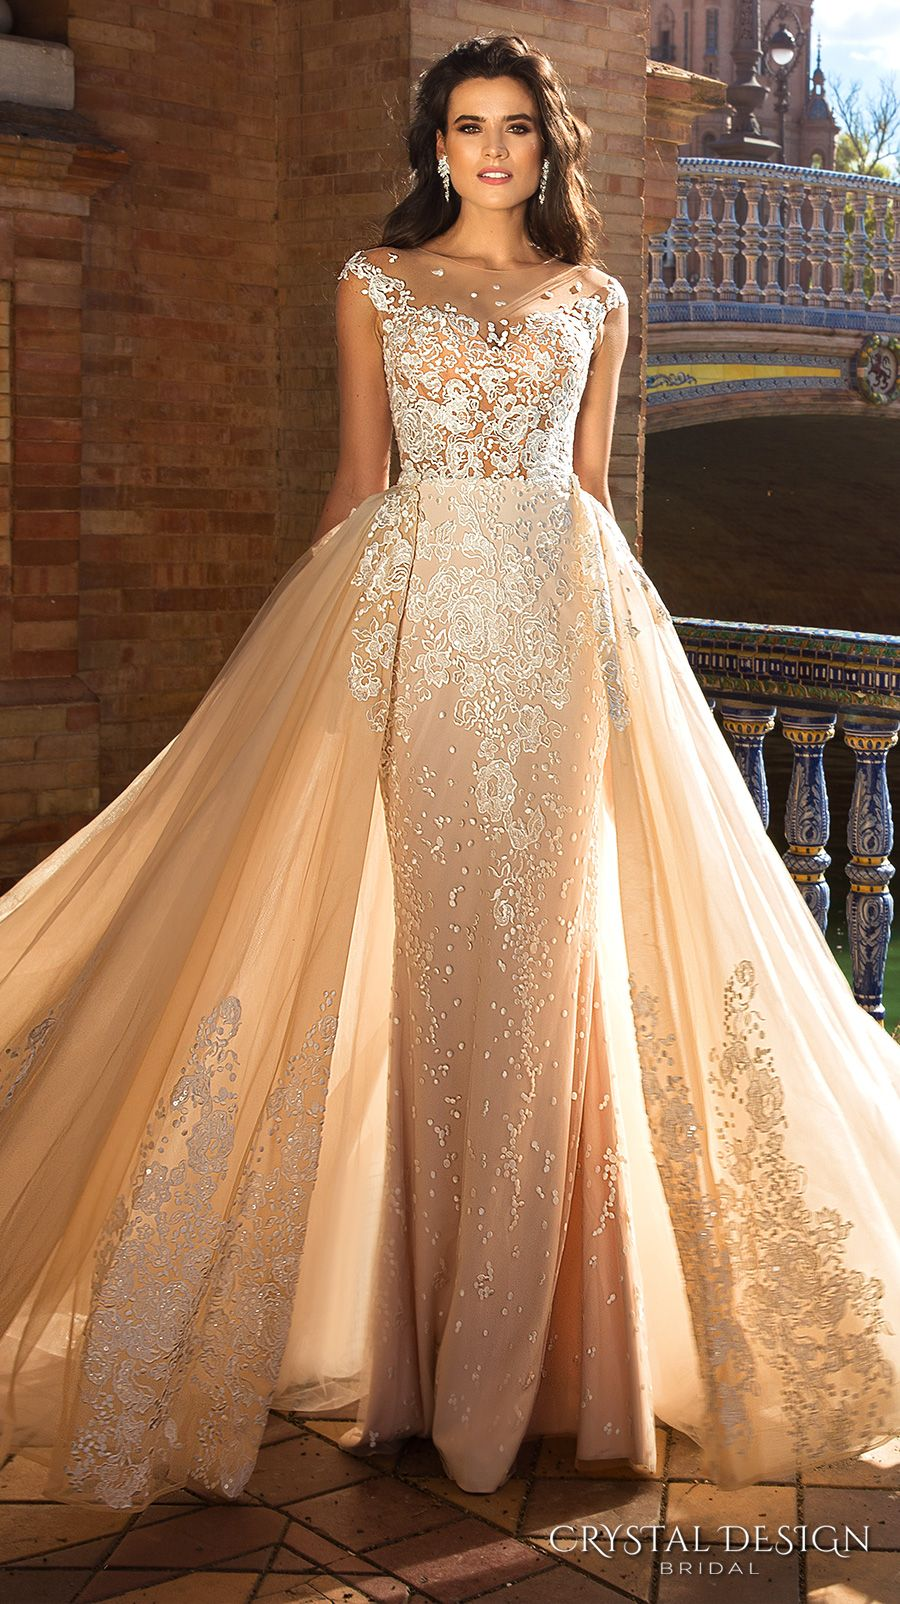 Classy Bell Sleeve Prom Gown V-neck Champagne Trumpet Women Formal Evening Party Gown Luxury Beaded Sheath Wedding Gown with Removable Train